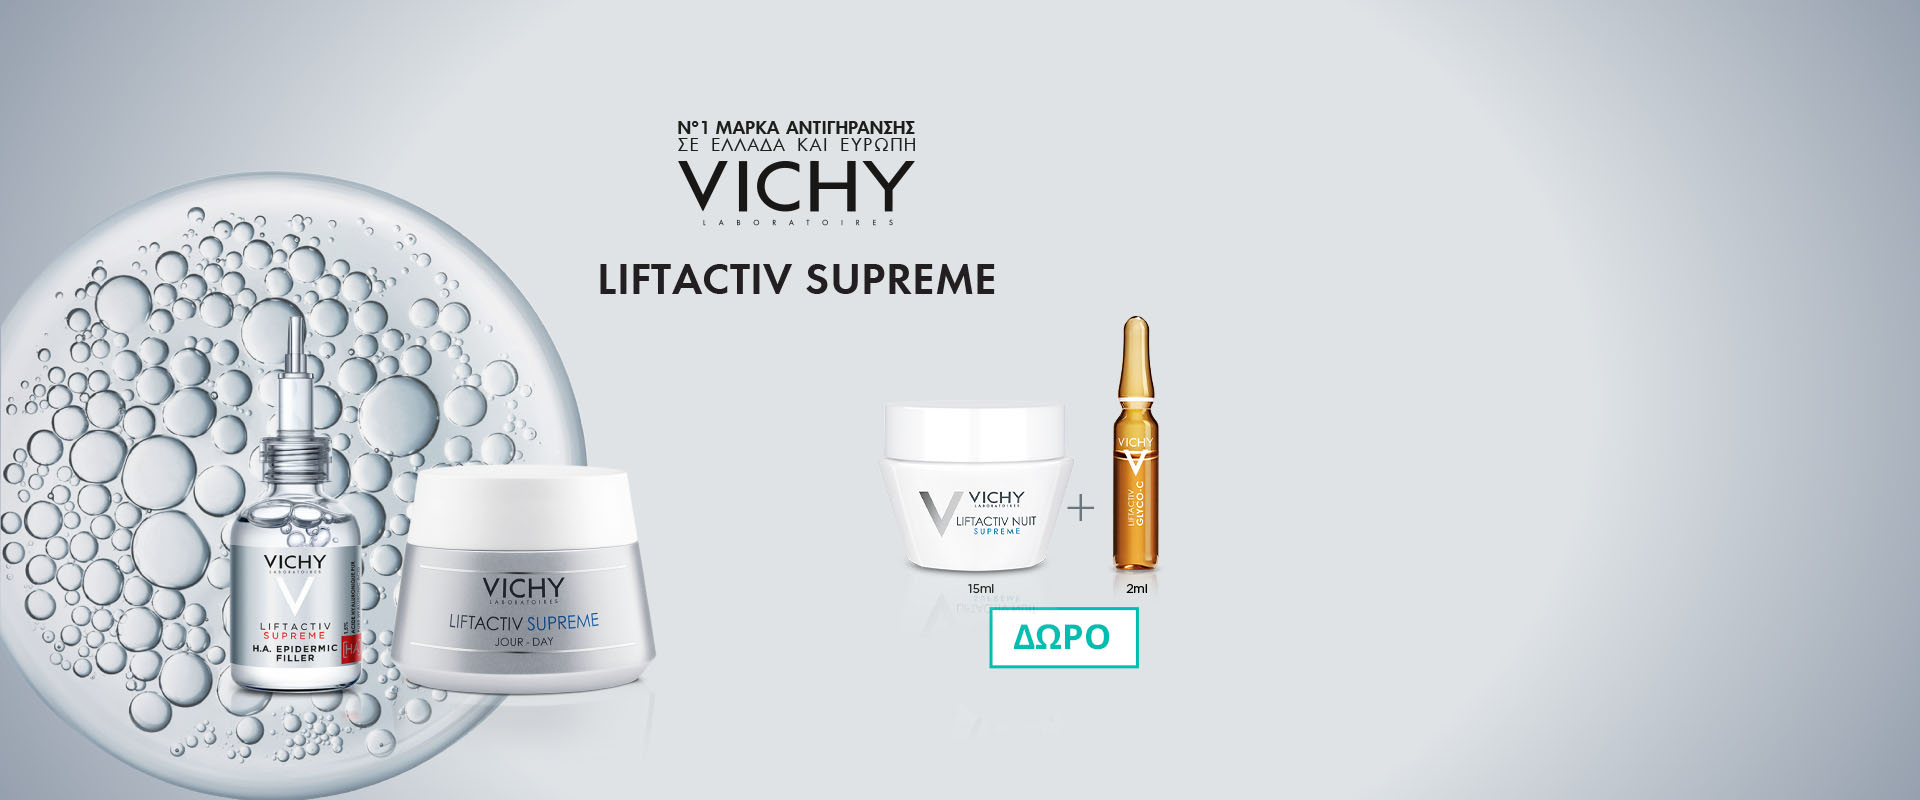 WITH EVERY PURCHASE VICHY LIFTACTIV SUPREME UP TO -31%